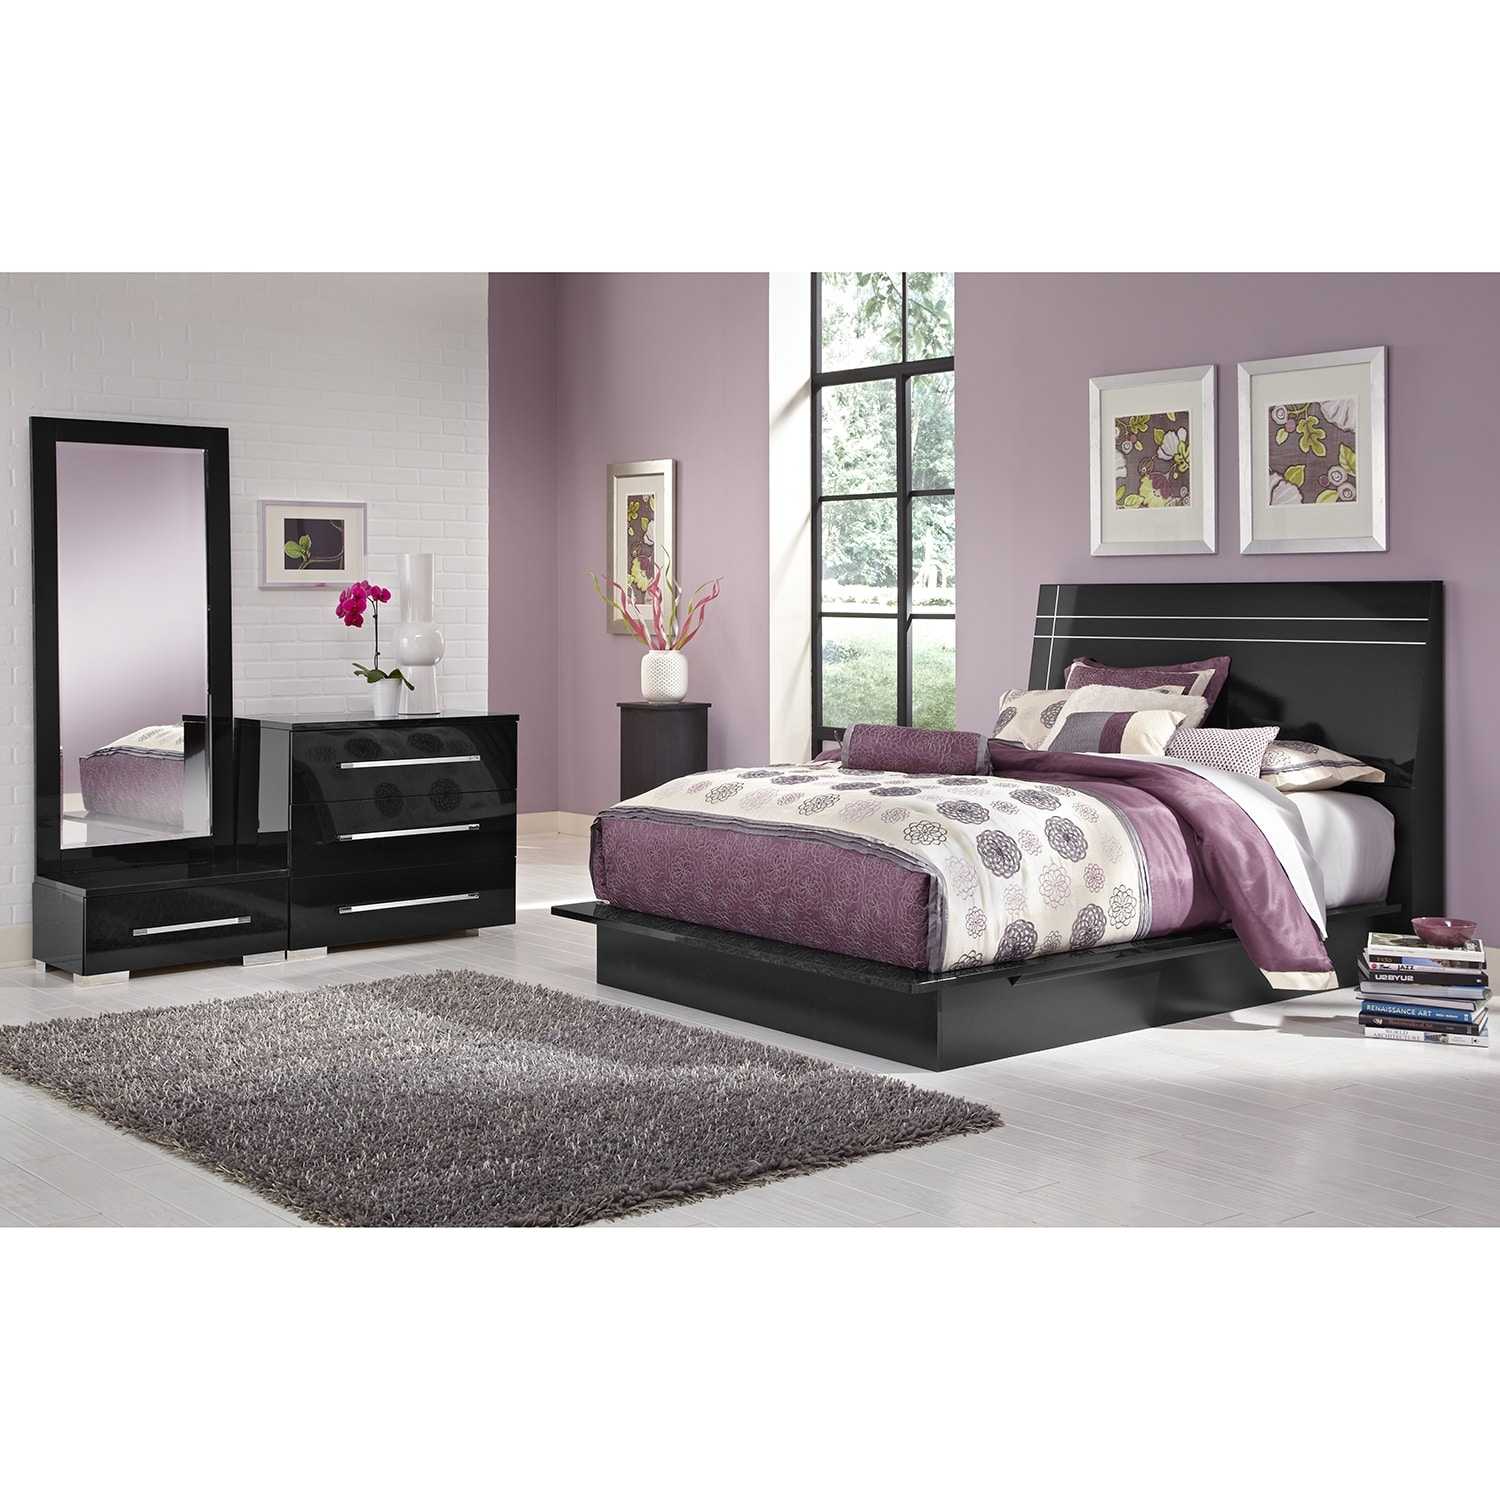 Bedroom Furniture - Dimora 5-Piece King Panel Bedroom Set - Black